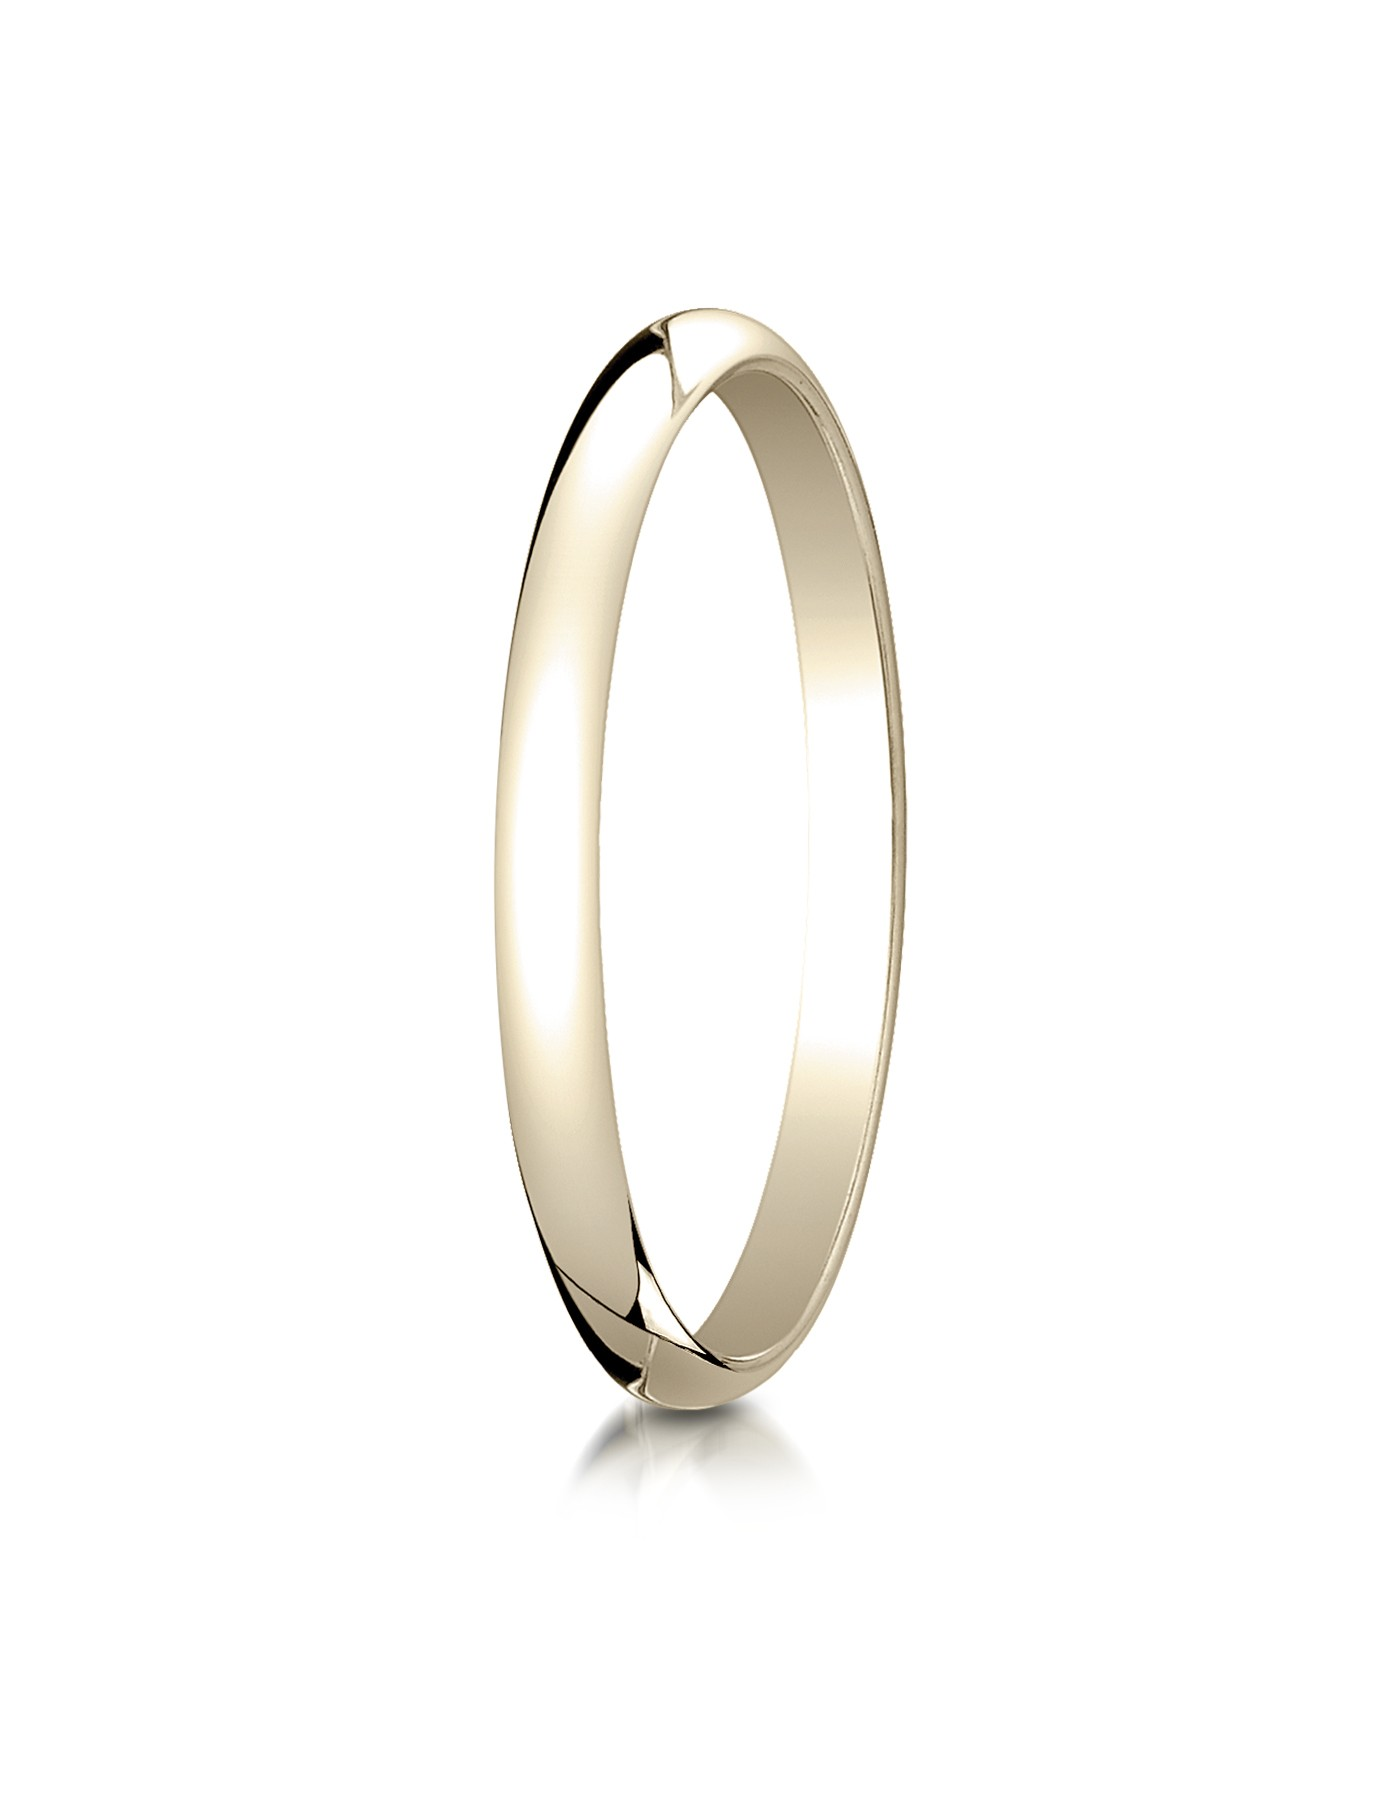 18k Yellow Gold 2.0 Mm Slightly Domed Traditional Oval Ring